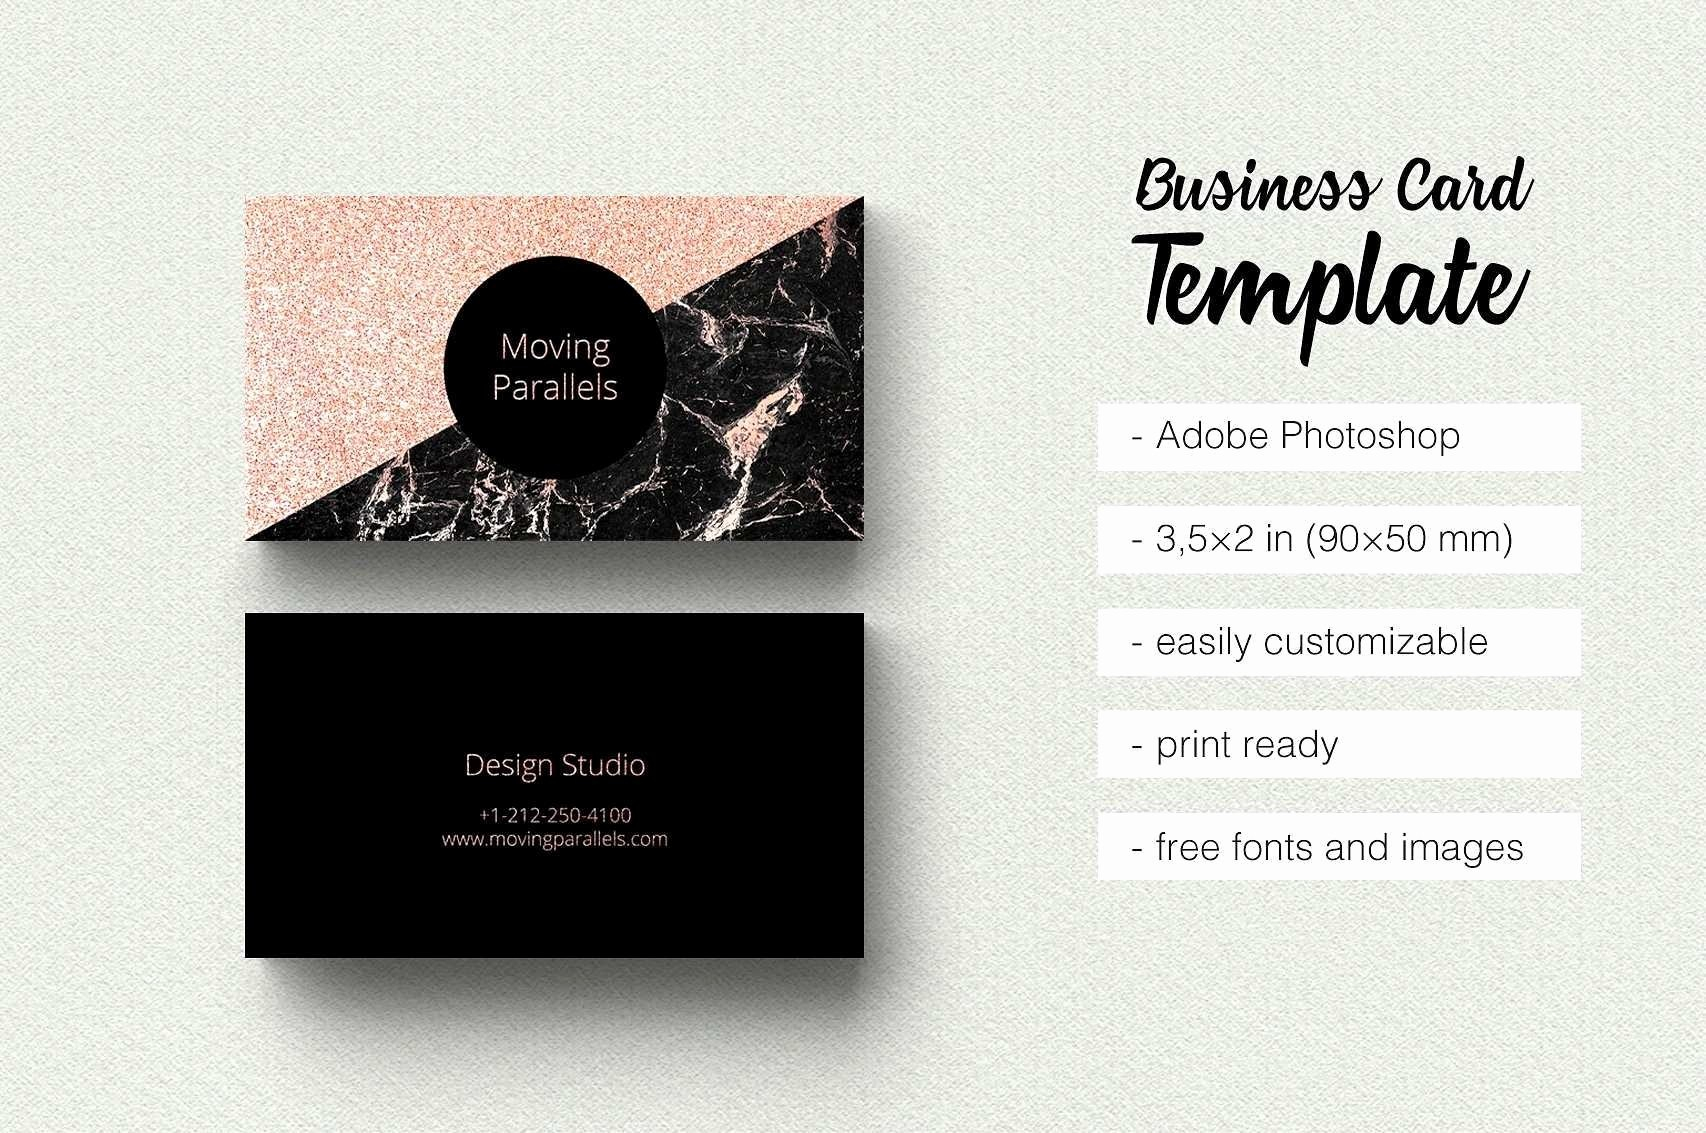 New Mary Kay Business Card  Hydraexecutives Throughout Mary Kay Business Cards Templates Free